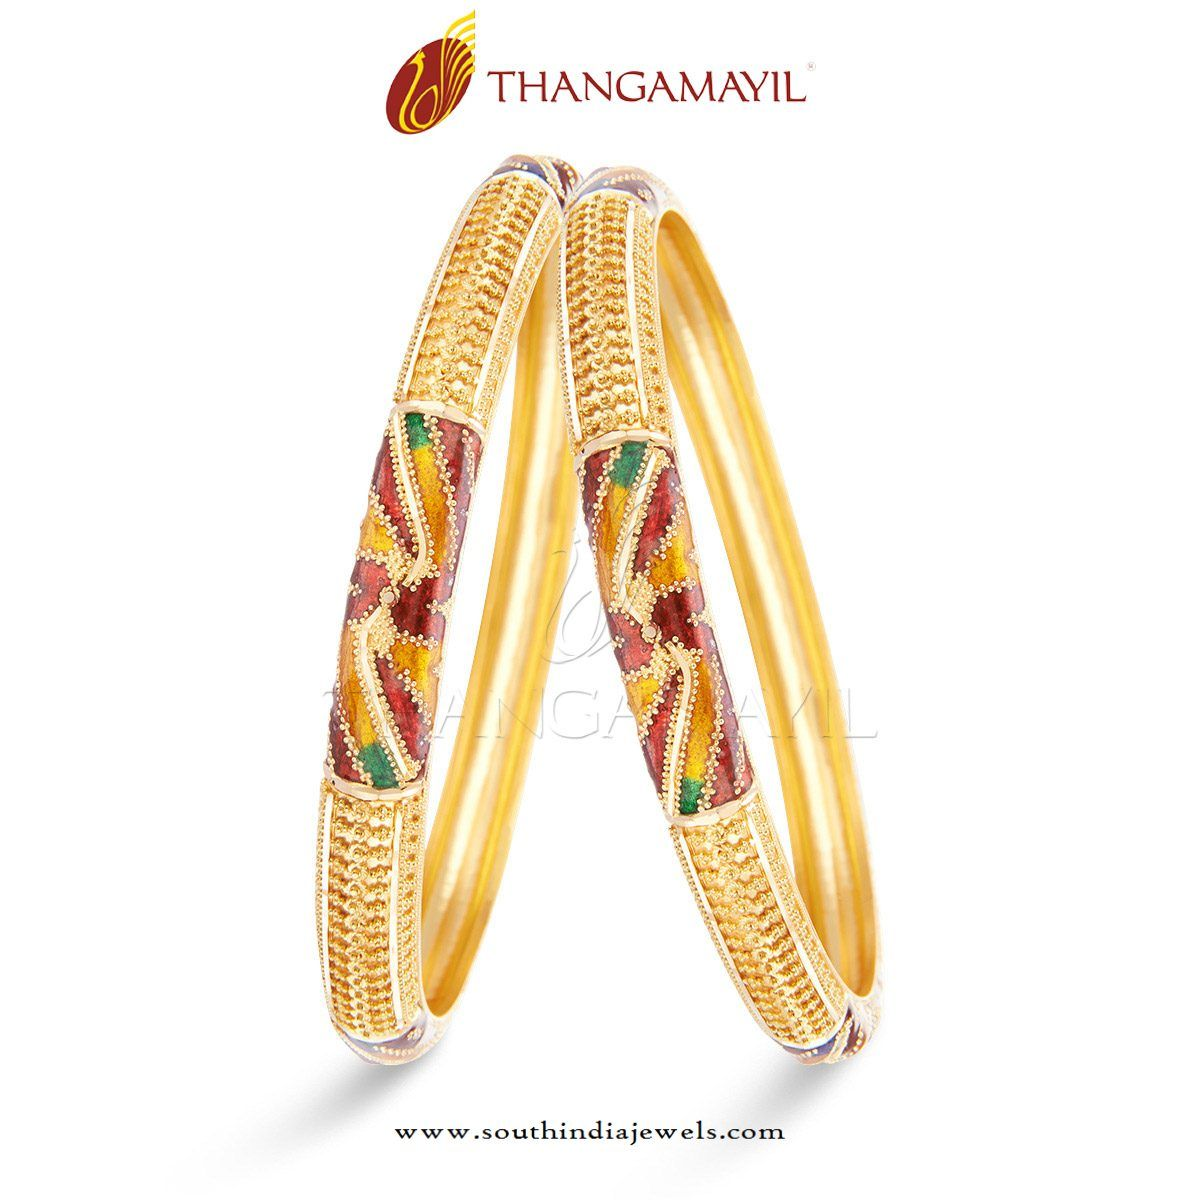 Gold Bangles with Enamel Work | Indian gold jewelry, Gold bangles ...